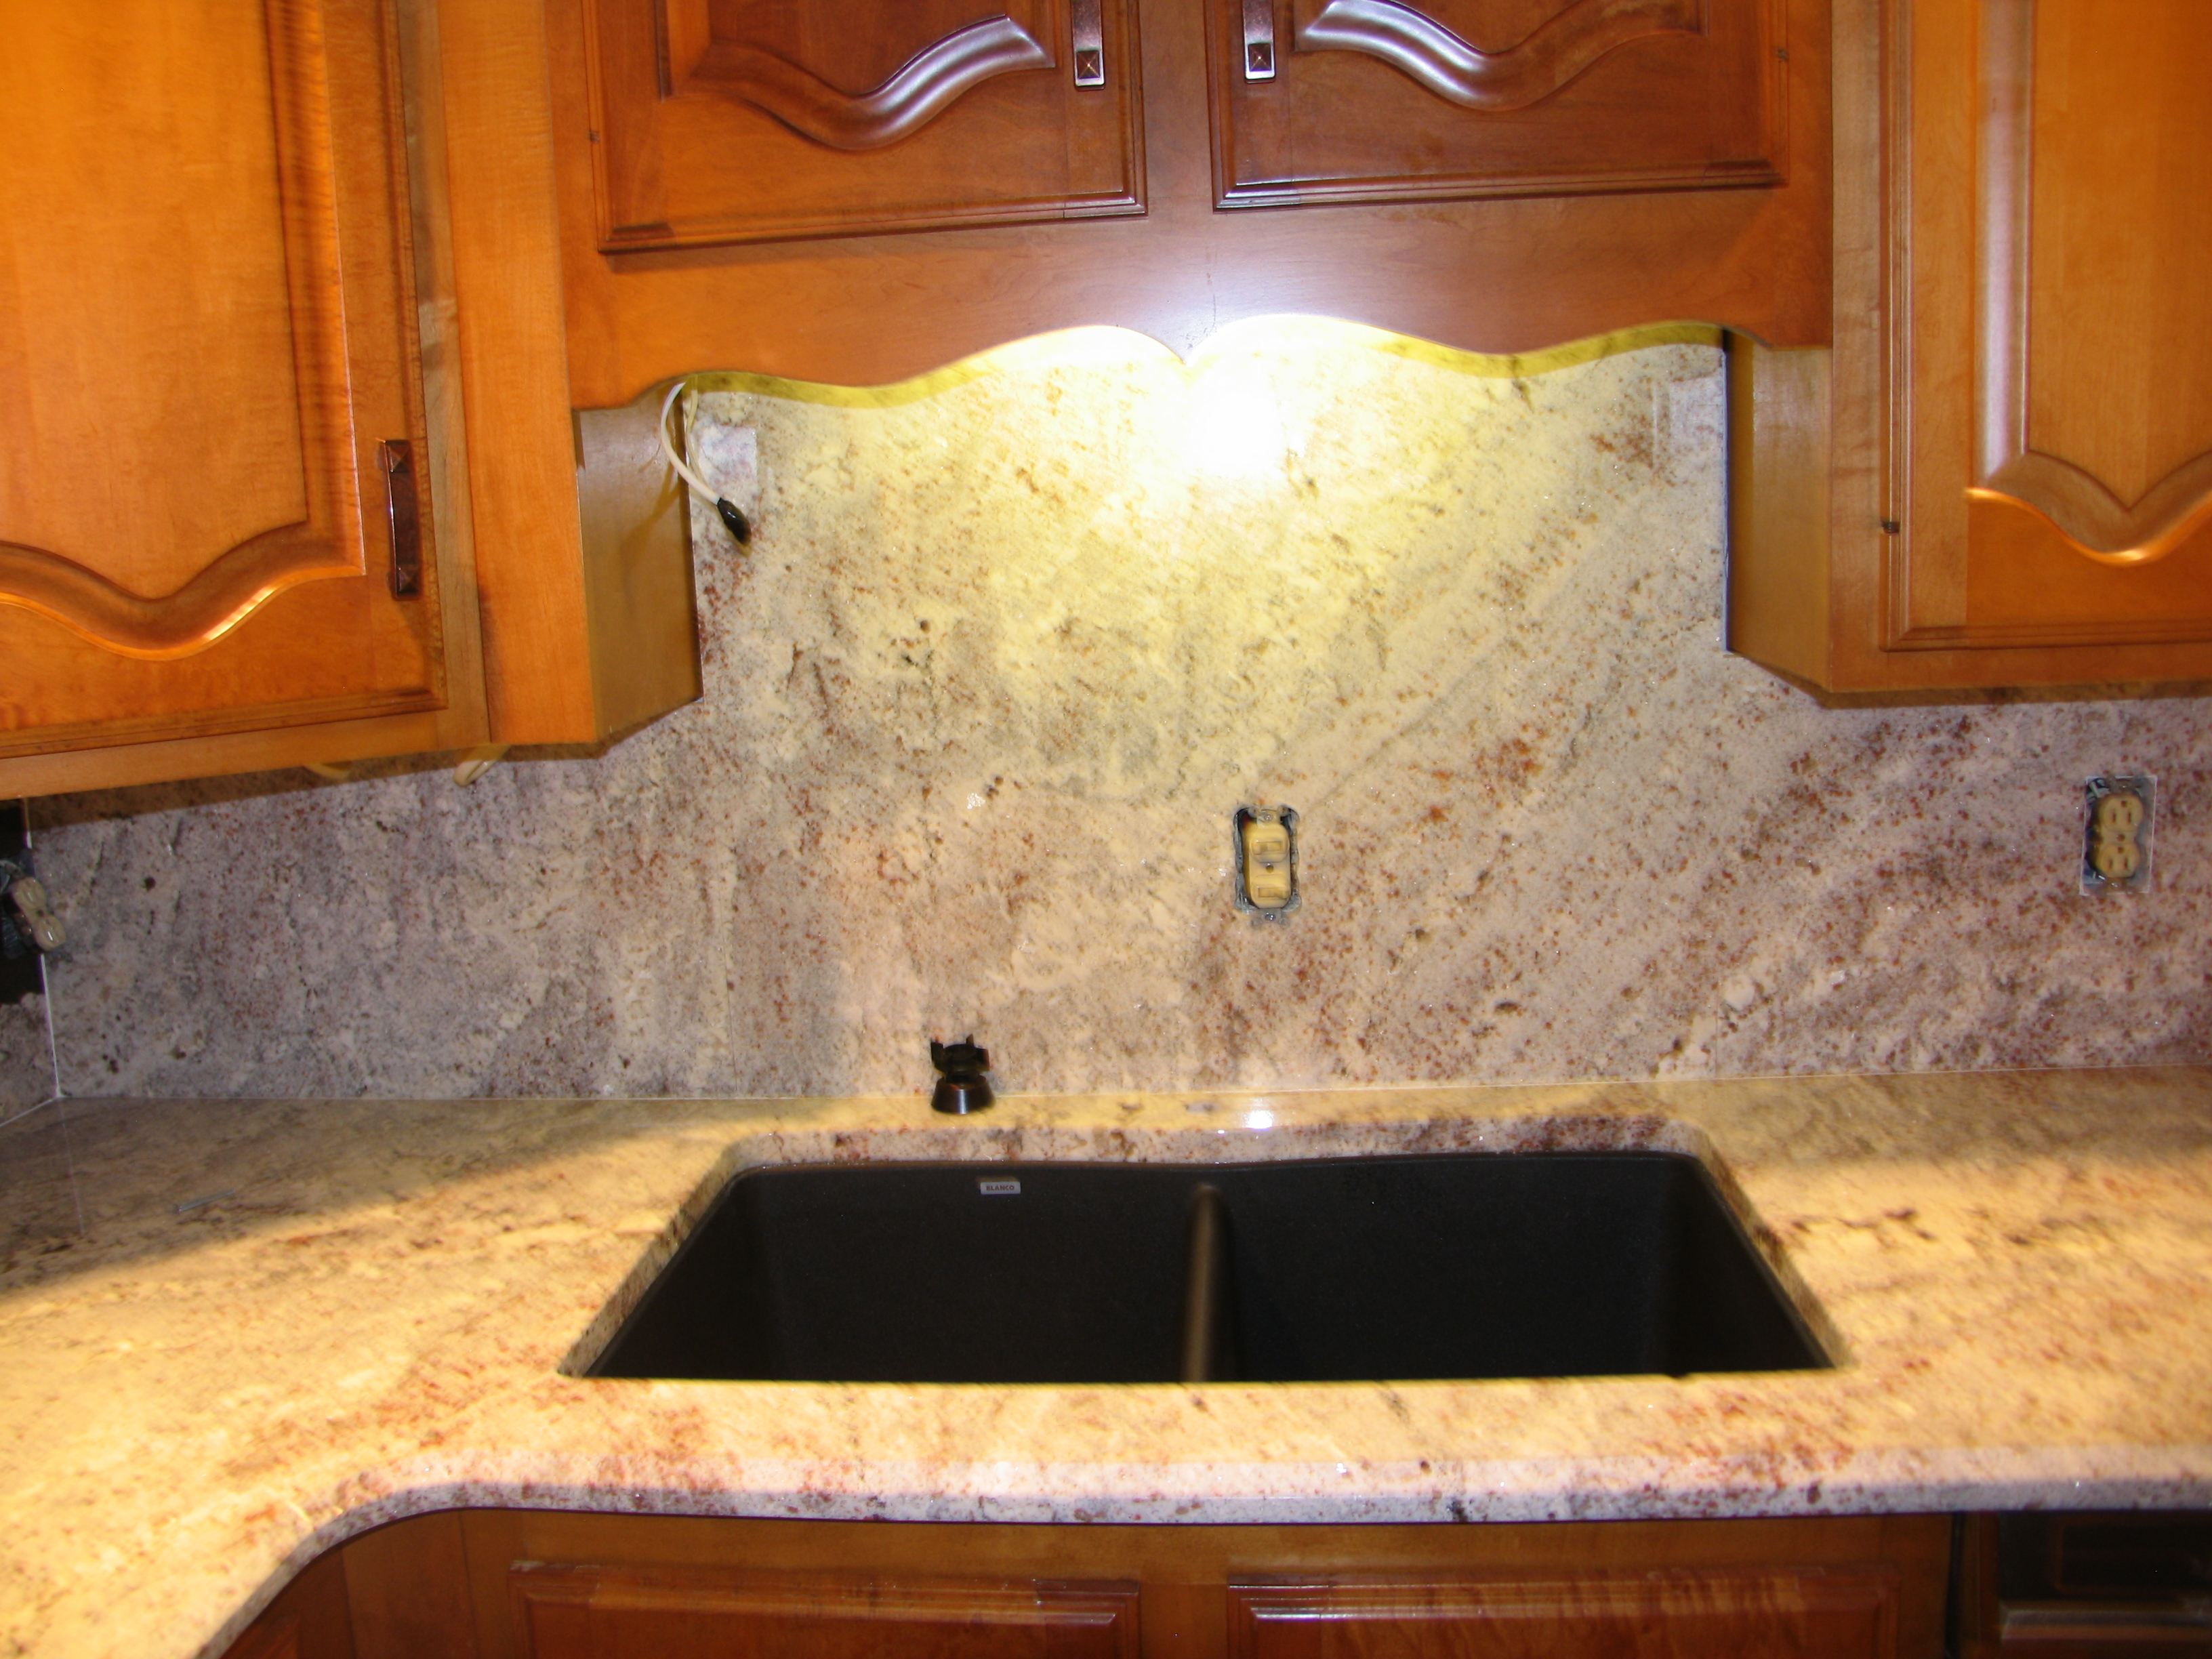 White springs granite & backsplash